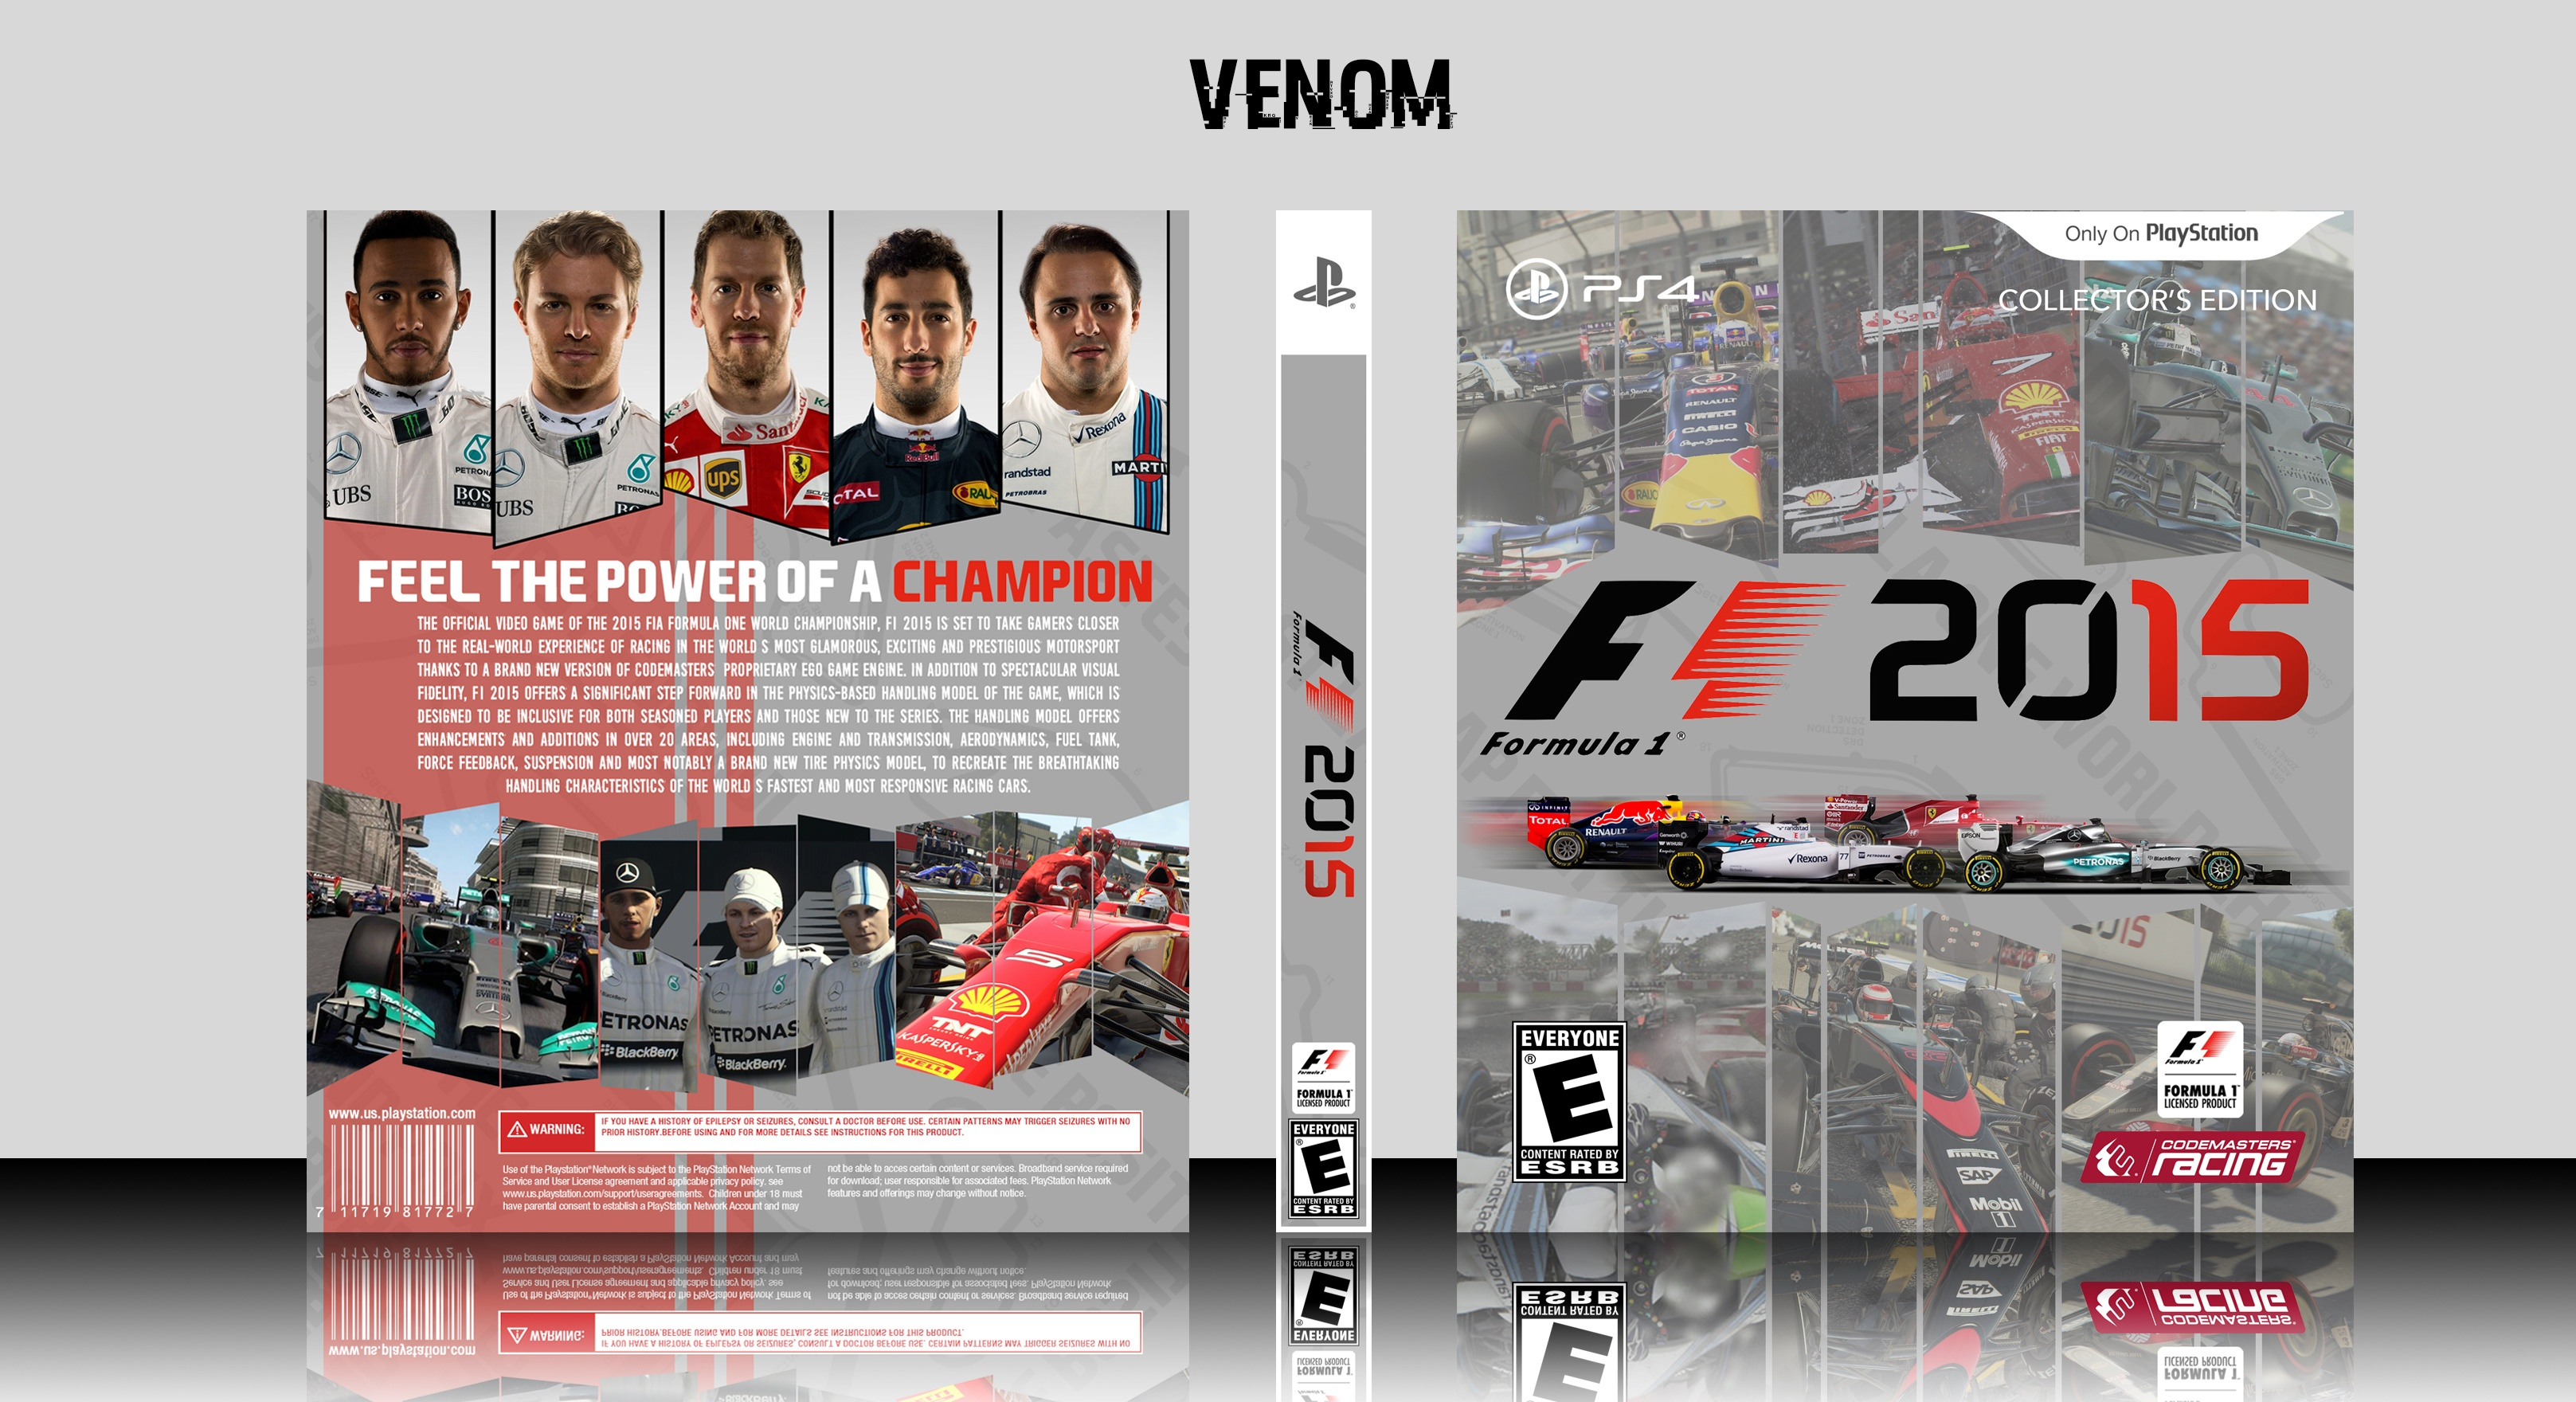 f1 2015 playstation 4 box art cover by venom. Black Bedroom Furniture Sets. Home Design Ideas